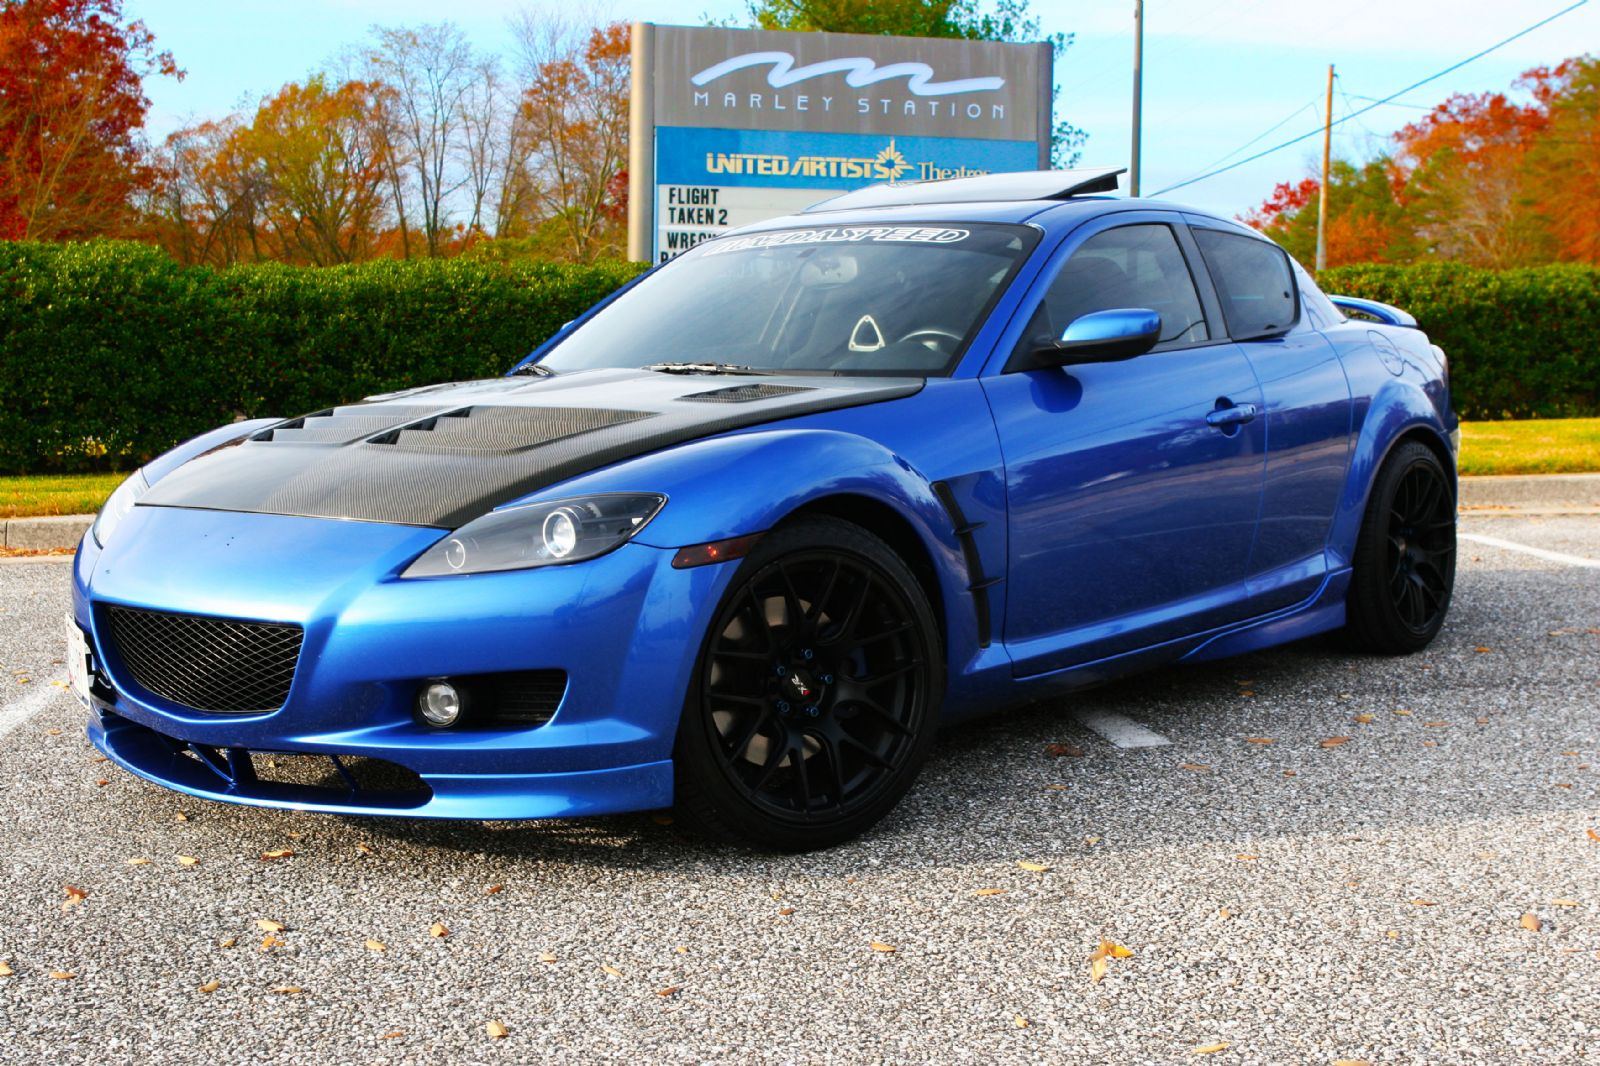 2005 mazda rx 8 sport for sale towson maryland. Black Bedroom Furniture Sets. Home Design Ideas